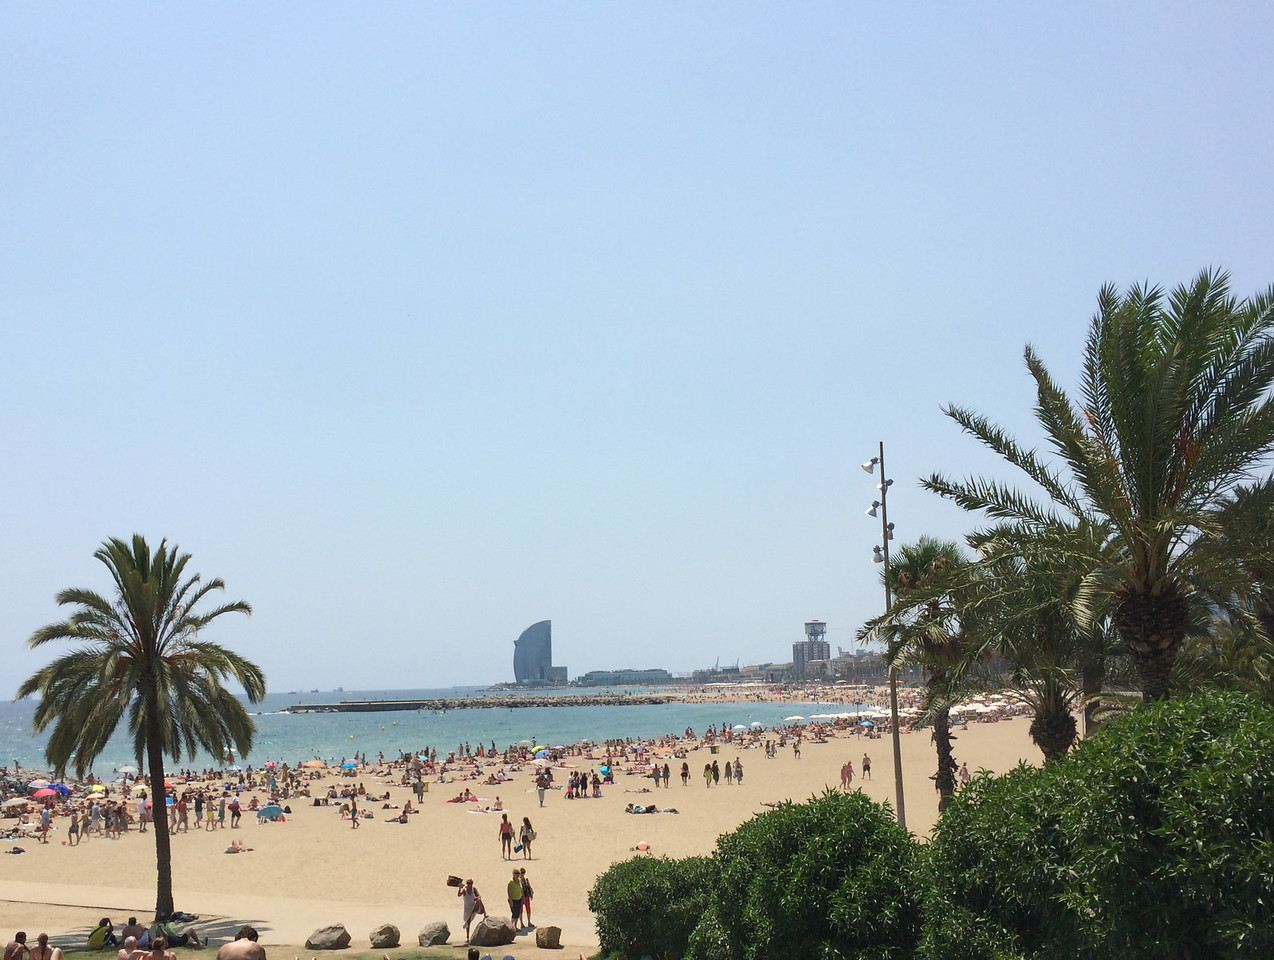 The crowded Barceloneta Beach on the Mediterranean with the W hotel sticking out in the distance.